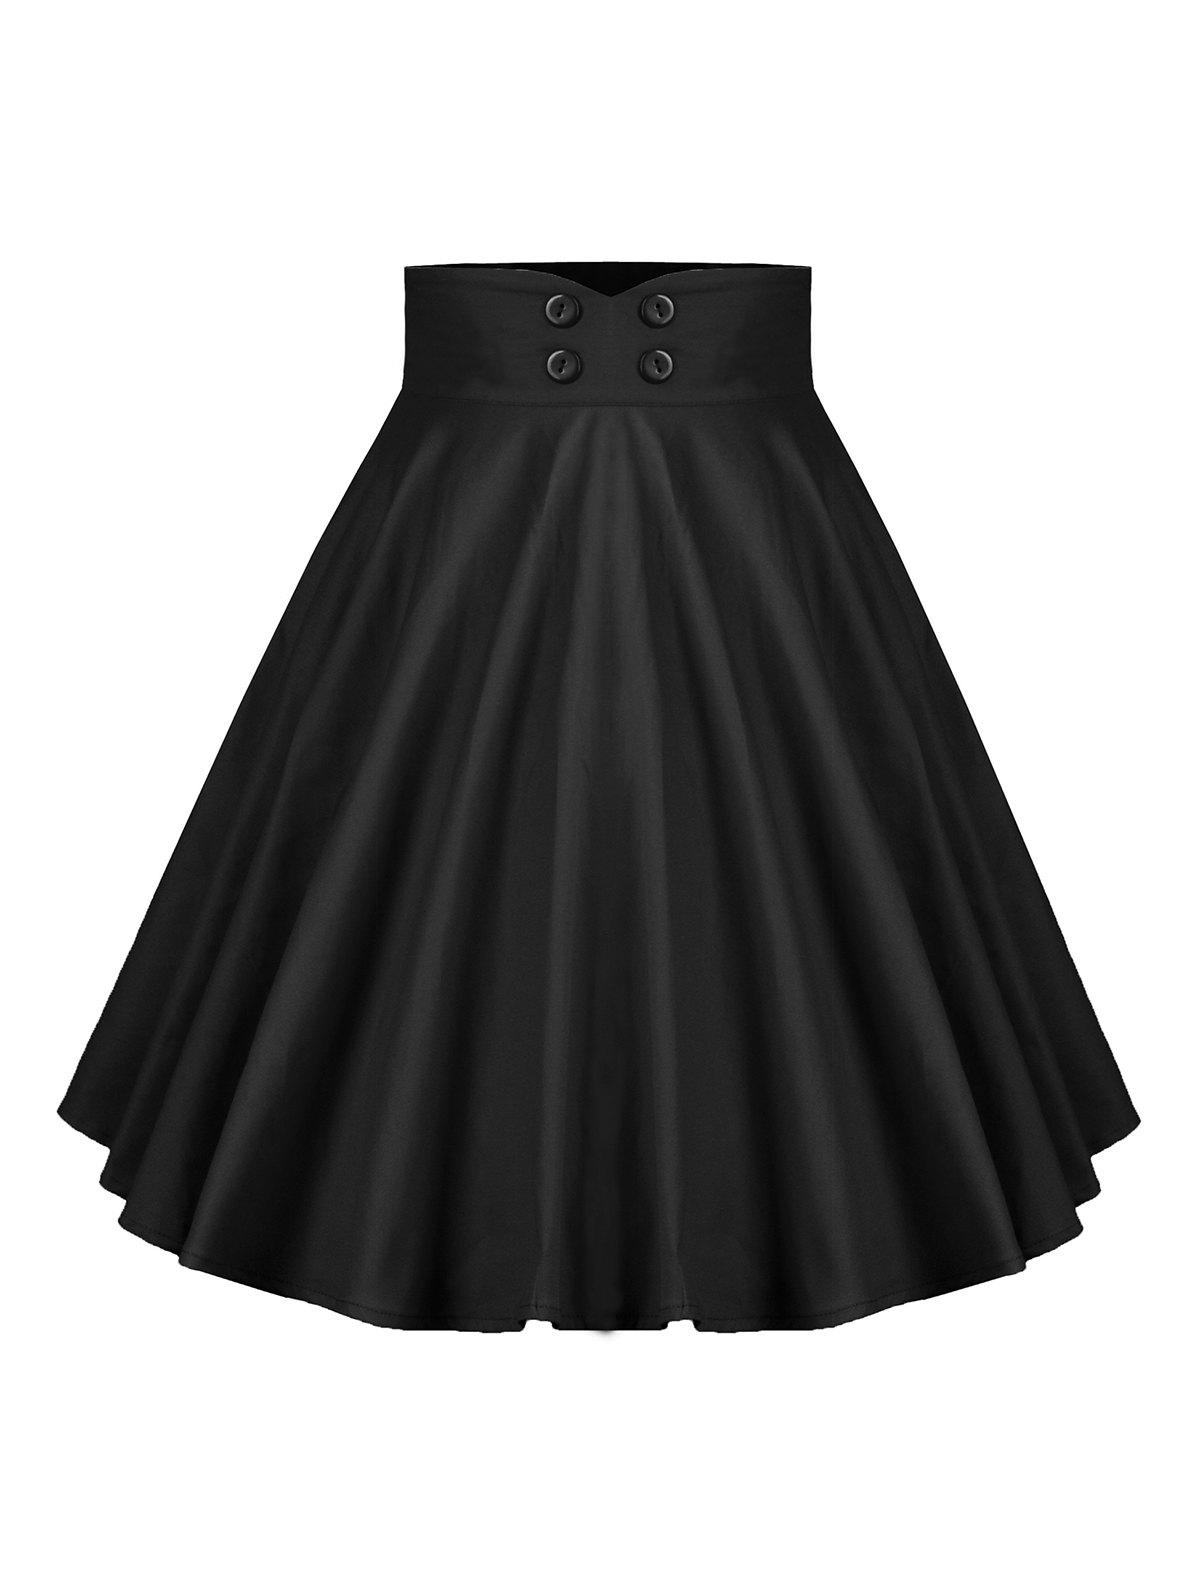 Buttoned A Line High Rise Pleated Skirt - BLACK XL